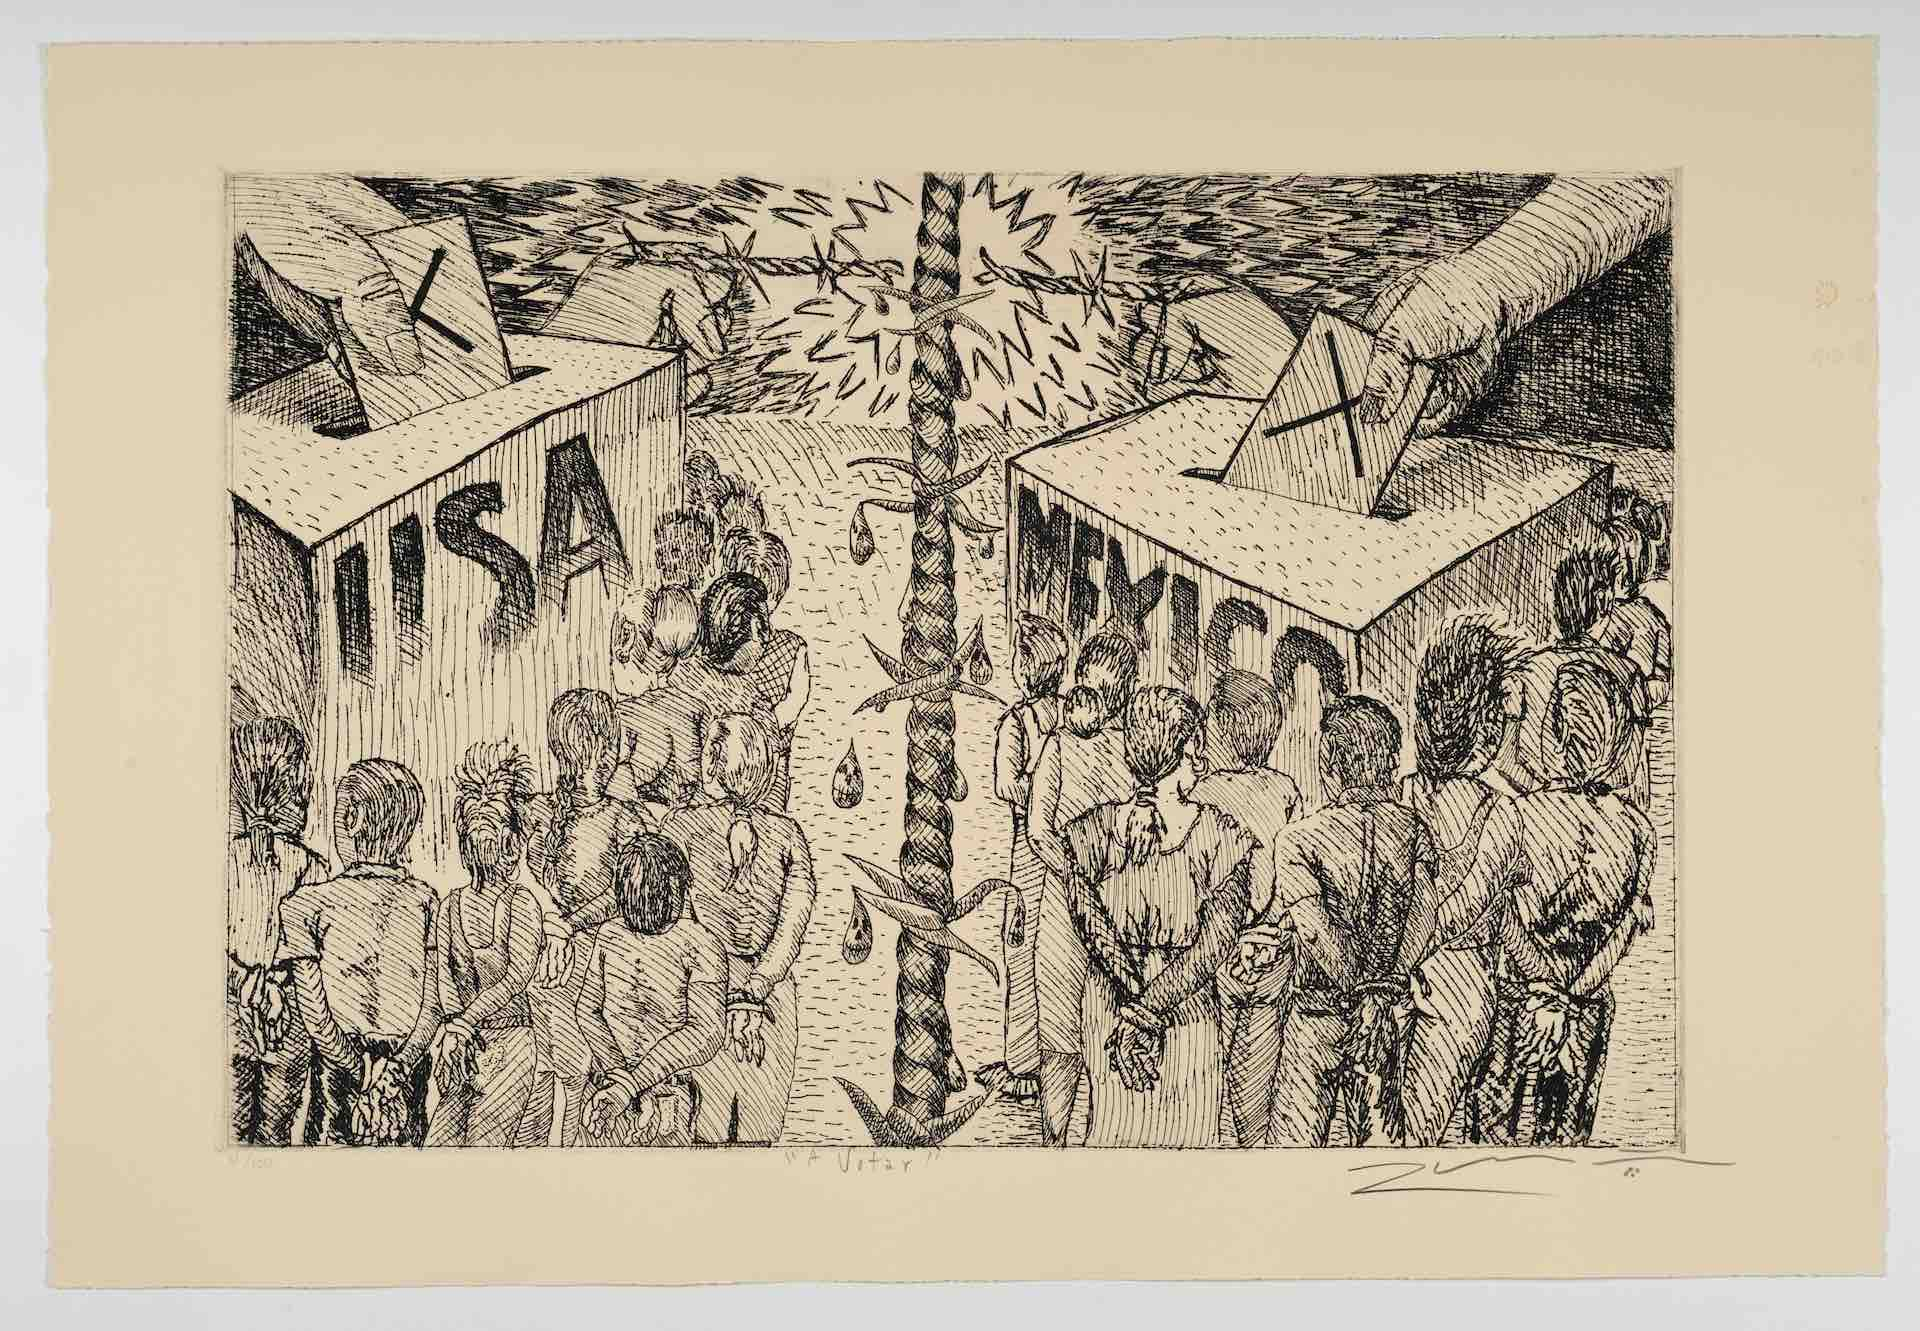 Léo Limőn, A Votar [To vote], from The New Immigration series, 1988, etching, 14 15/16 x 22 in. (37.9 x 55.9 cm), Featuring two groups of people lined up to vote separated by barbed wire, one ballot box says USA the other says Mexico, Blanton Museum of Art, The University of Texas at Austin, Gift of Gilberto Cardenas, 2017